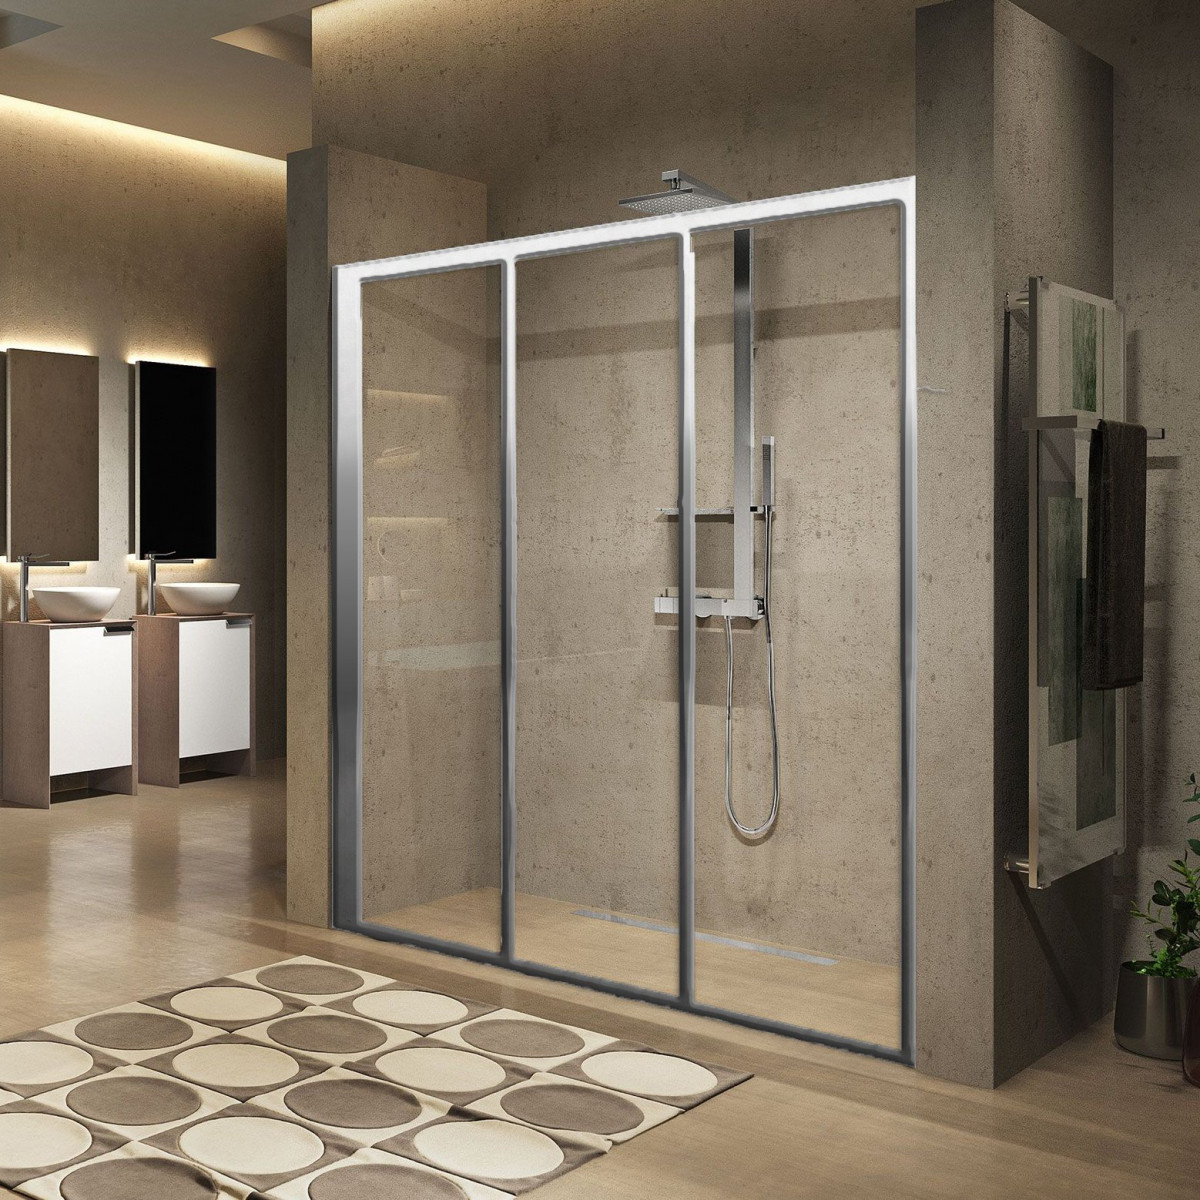 Novellini Lunes 2 0 3p Three Sliding Panel Shower Door